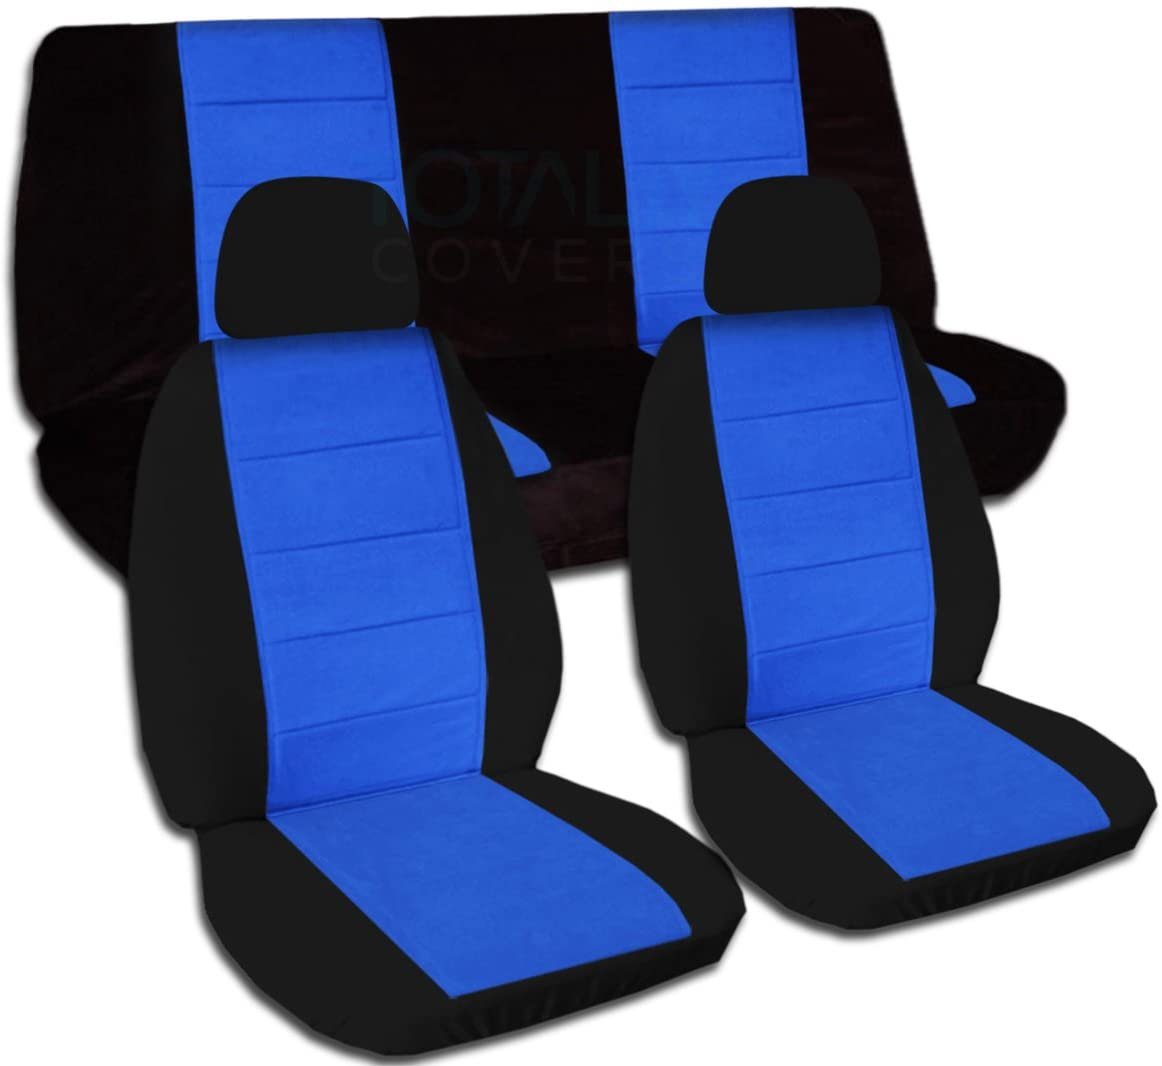 Totally Covers Two-Tone Car Seat Covers w 2 Front Headrest Covers: Black & Blue - Semi-Custom Fit - Full Set - Will Make Fit Any Car/Truck/Van/RV/SUV (21 Colors)